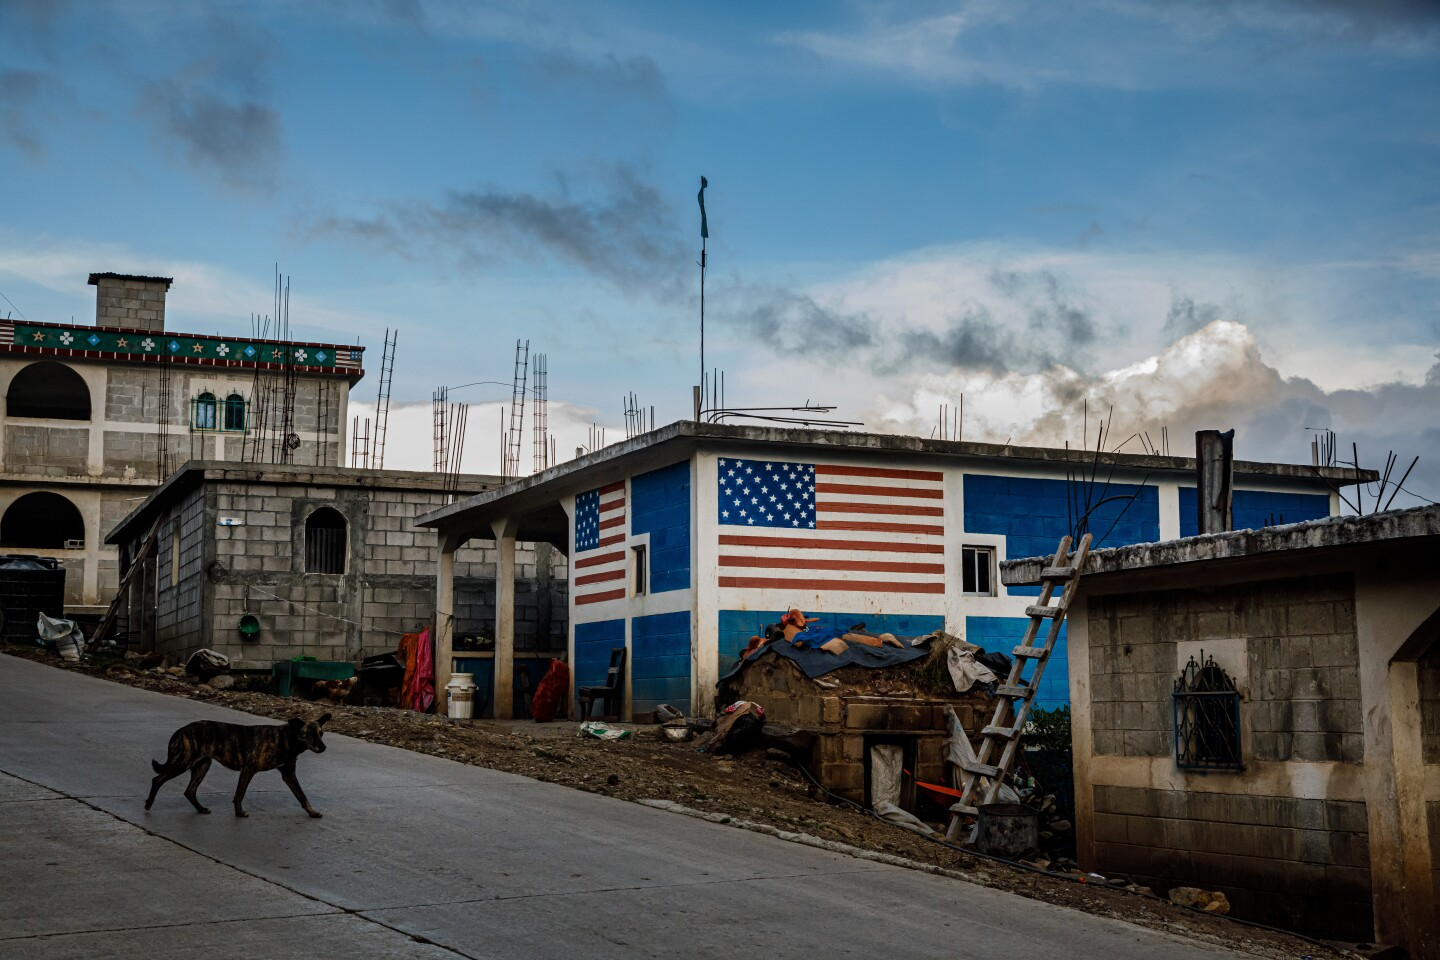 TODOS SANTOS CUCHUMAT?N, DEPARTMENT OF HUEHUETENANGO -- TUESDAY, JUNE 25, 2019: A dog walks by a home decorated with the American flag painted on its walls, near Todos Santos Cuchumat?n, Guatemala, on June 25, 2019. (Marcus Yam / Los Angeles Times)